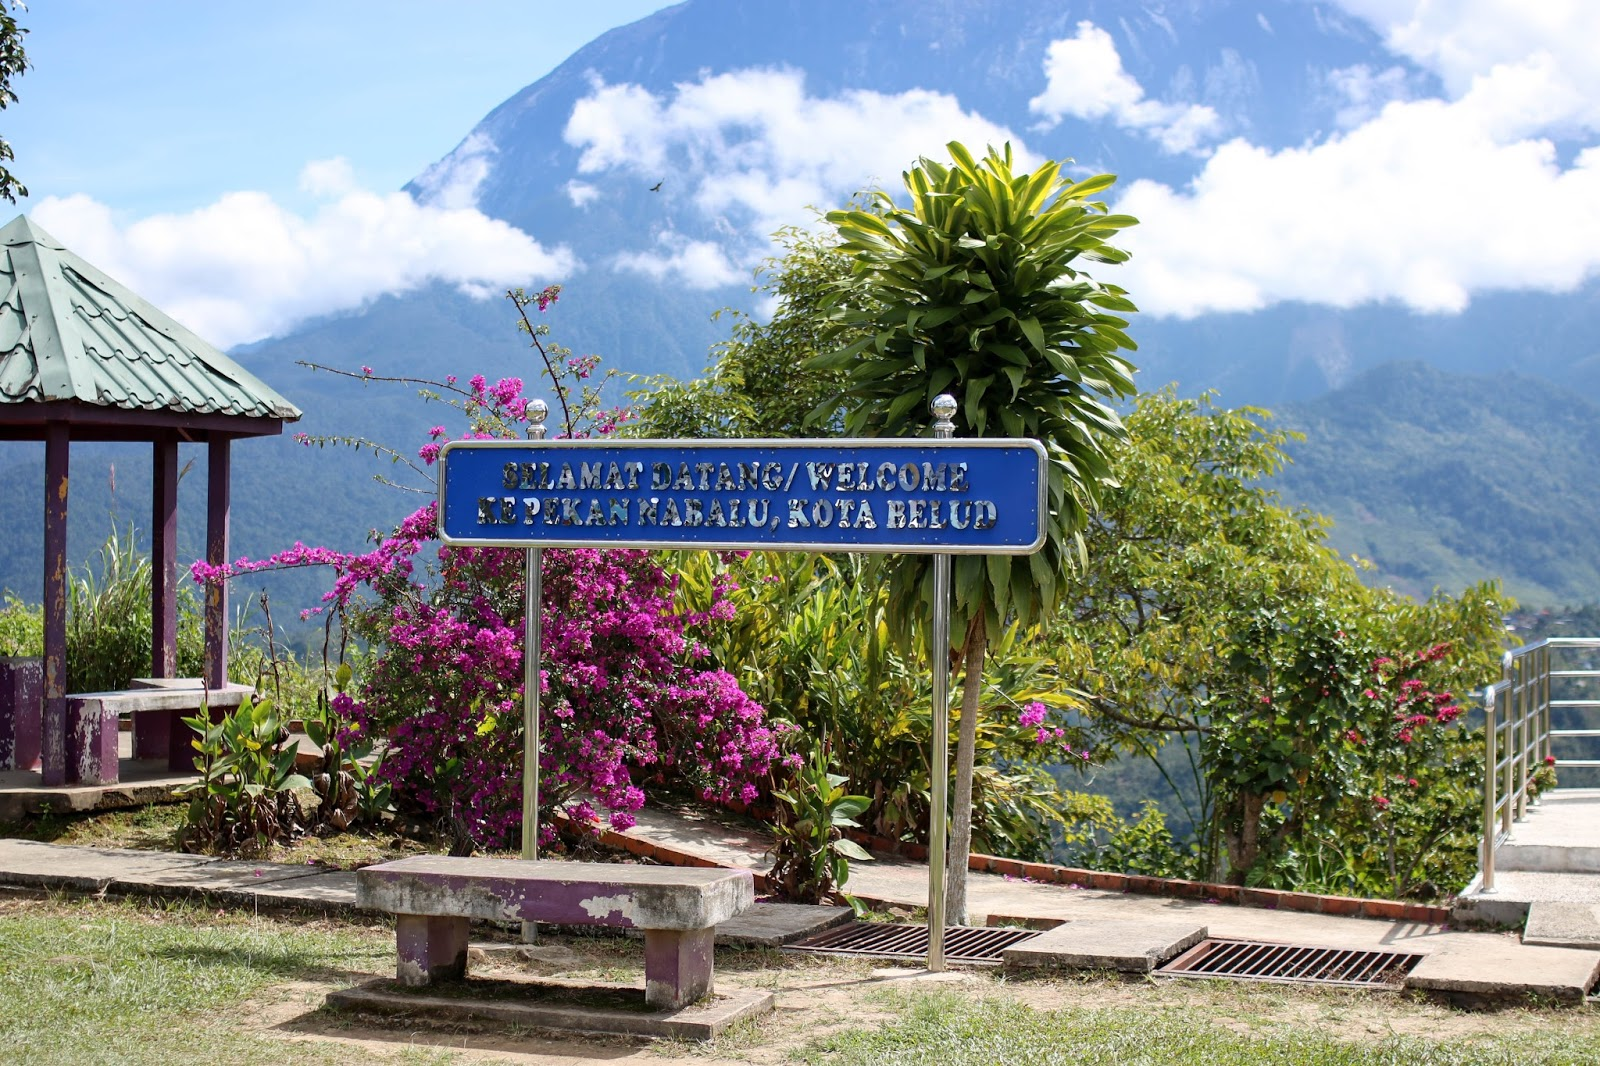 The Kinabalu Park is a popular tourist destination because it is a UNESCO Heritage Site.